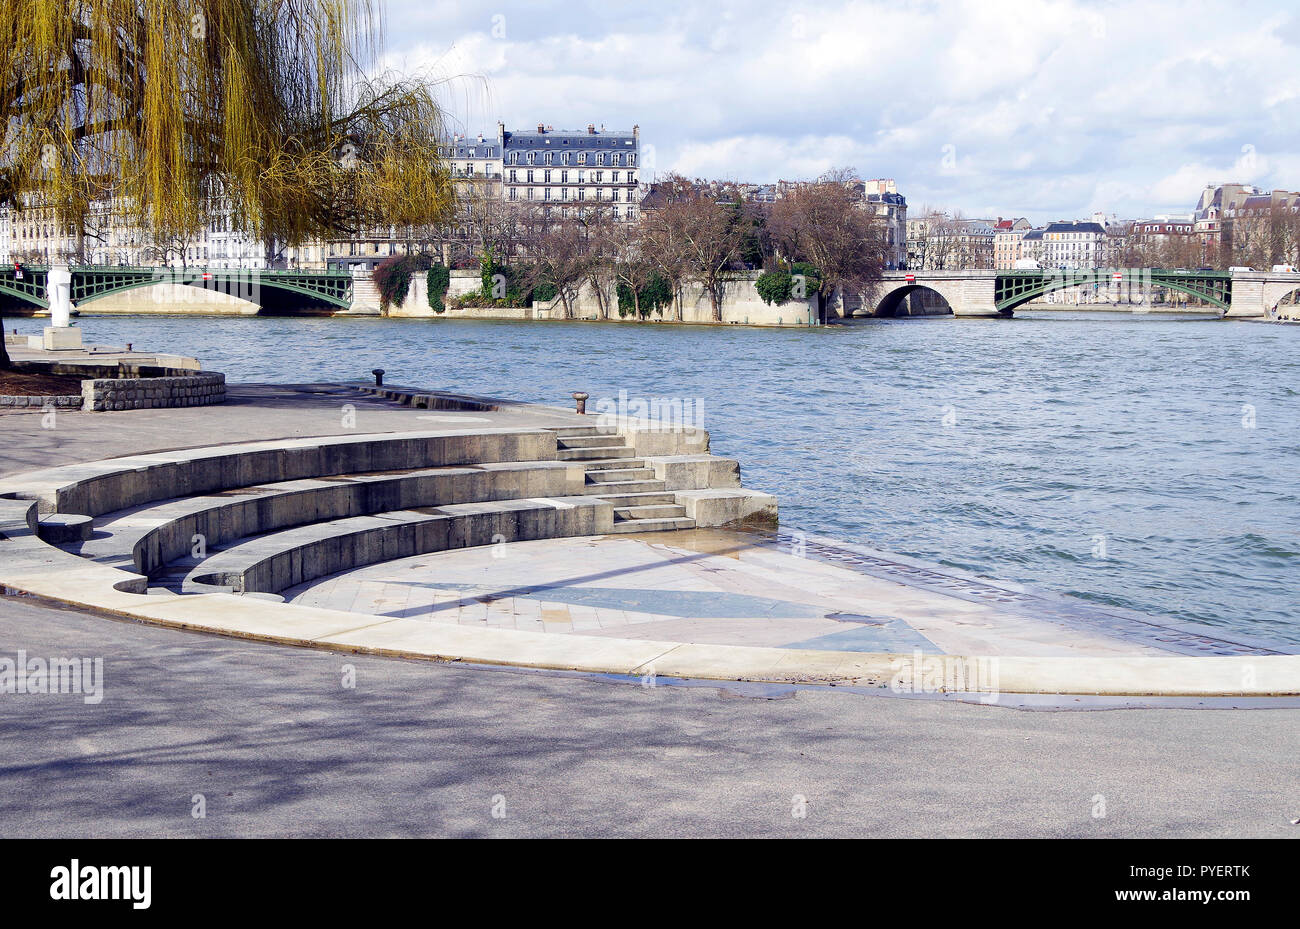 Paris, France, the western end of the Ile St Louis and the two parts of the Pont de Sully, with a stepped aedicule in the river bank in the foreground - Stock Image